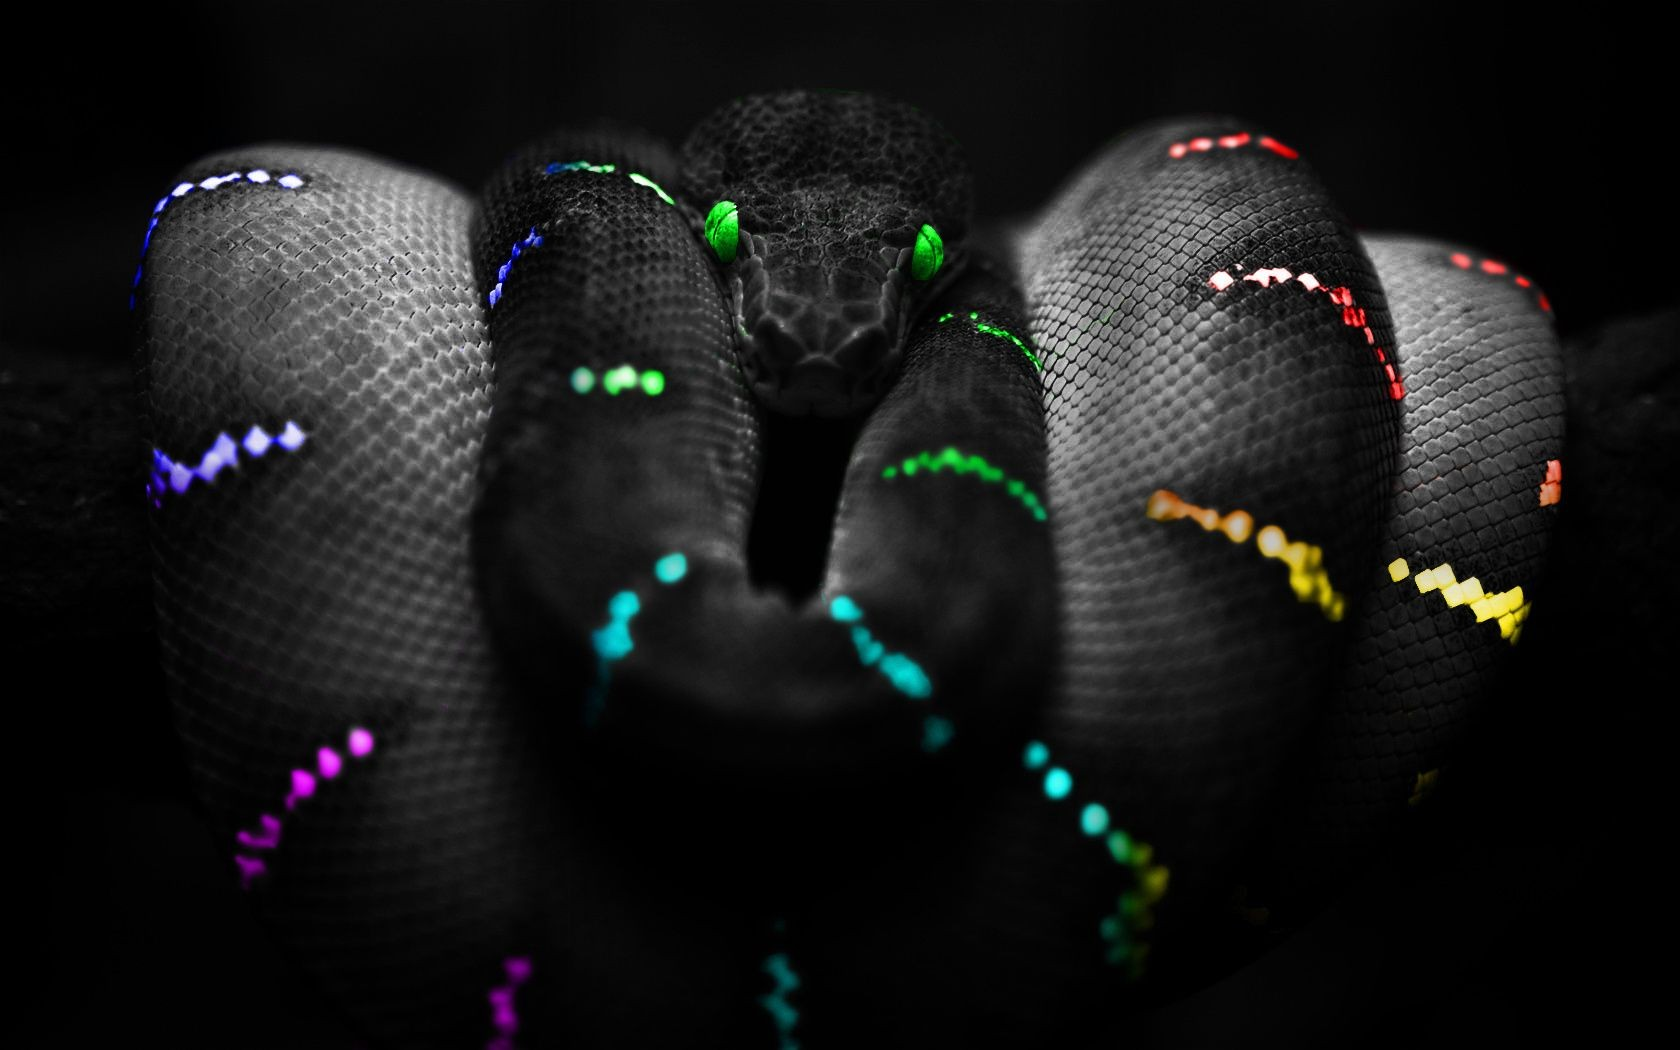 Snake With Green Eyes On Black Background Android Wallpapers